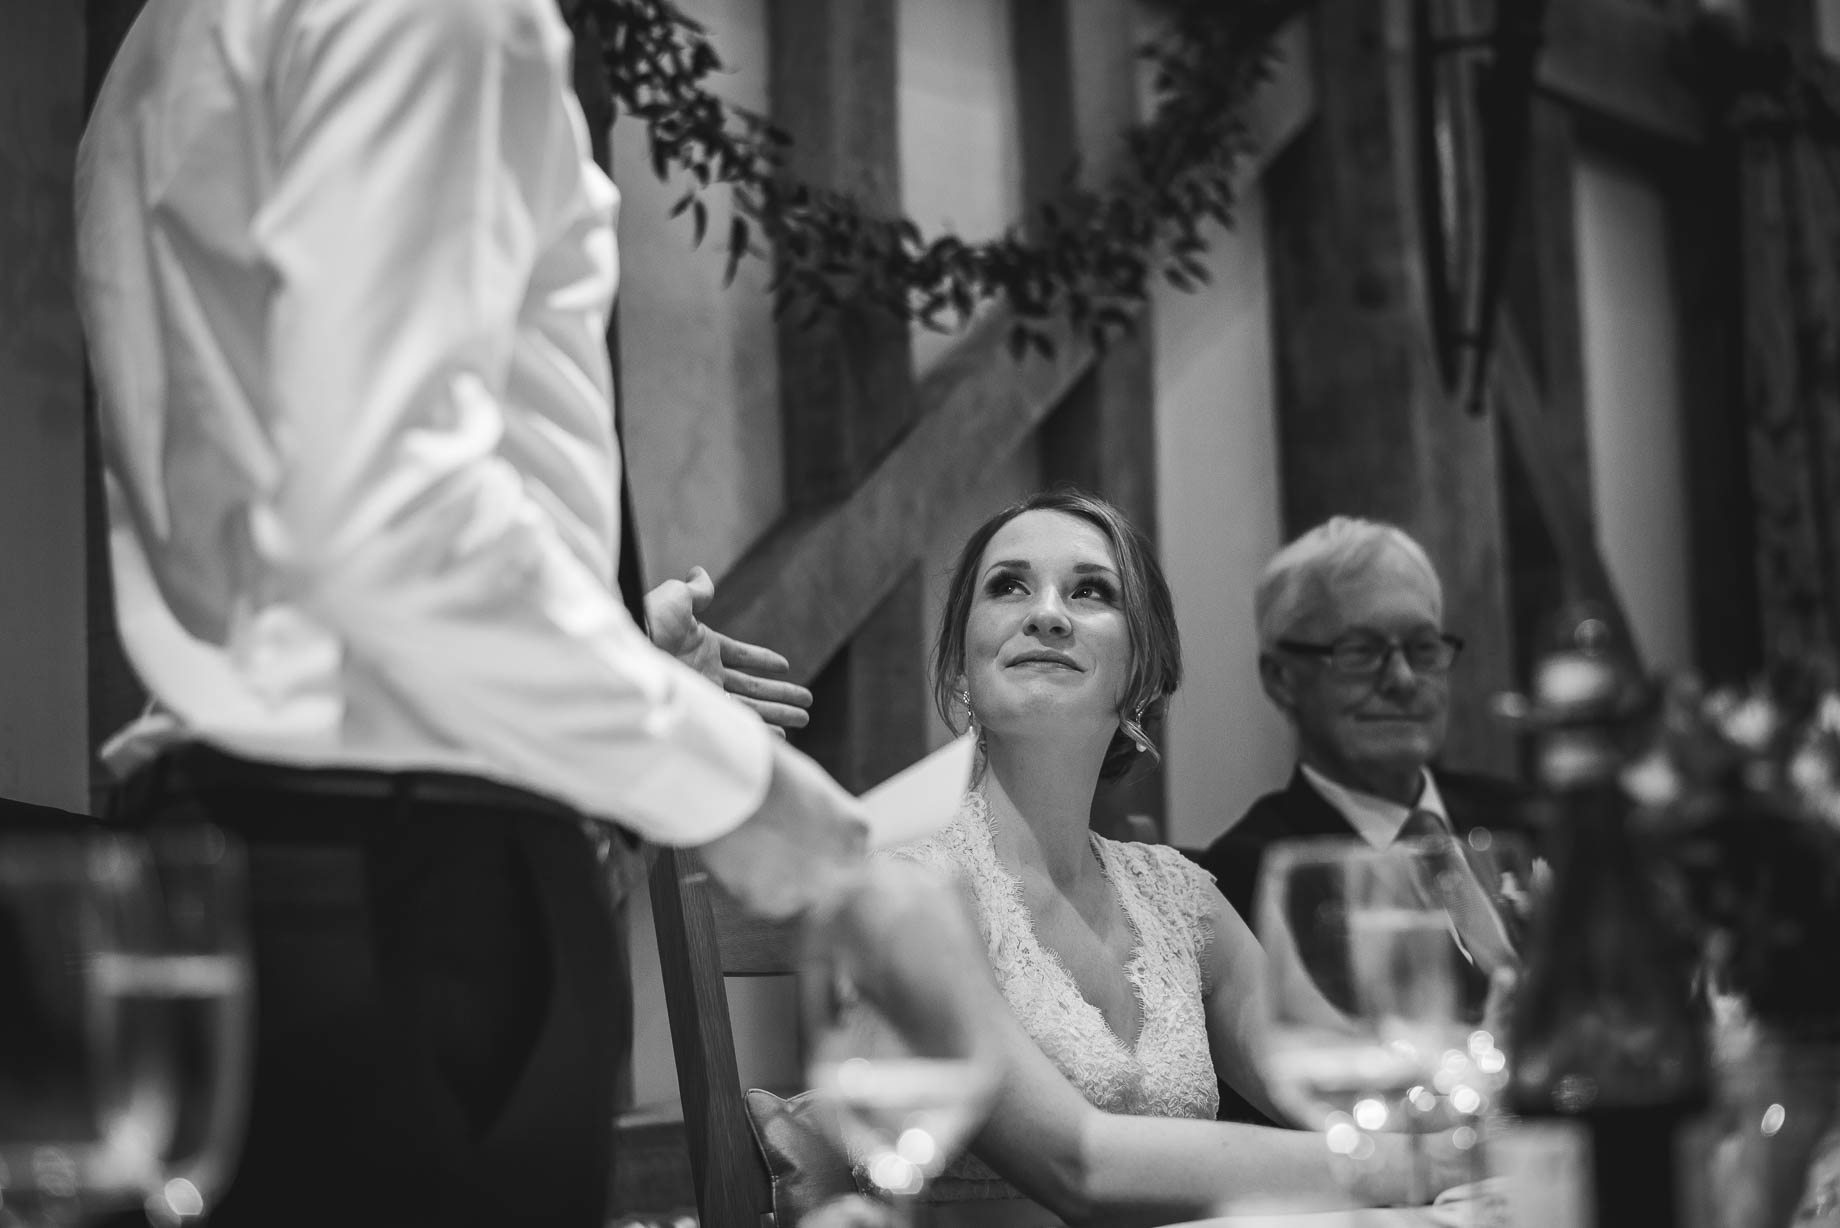 Surrey Wedding Photography by Guy Collier - Becca and James (142 of 145)